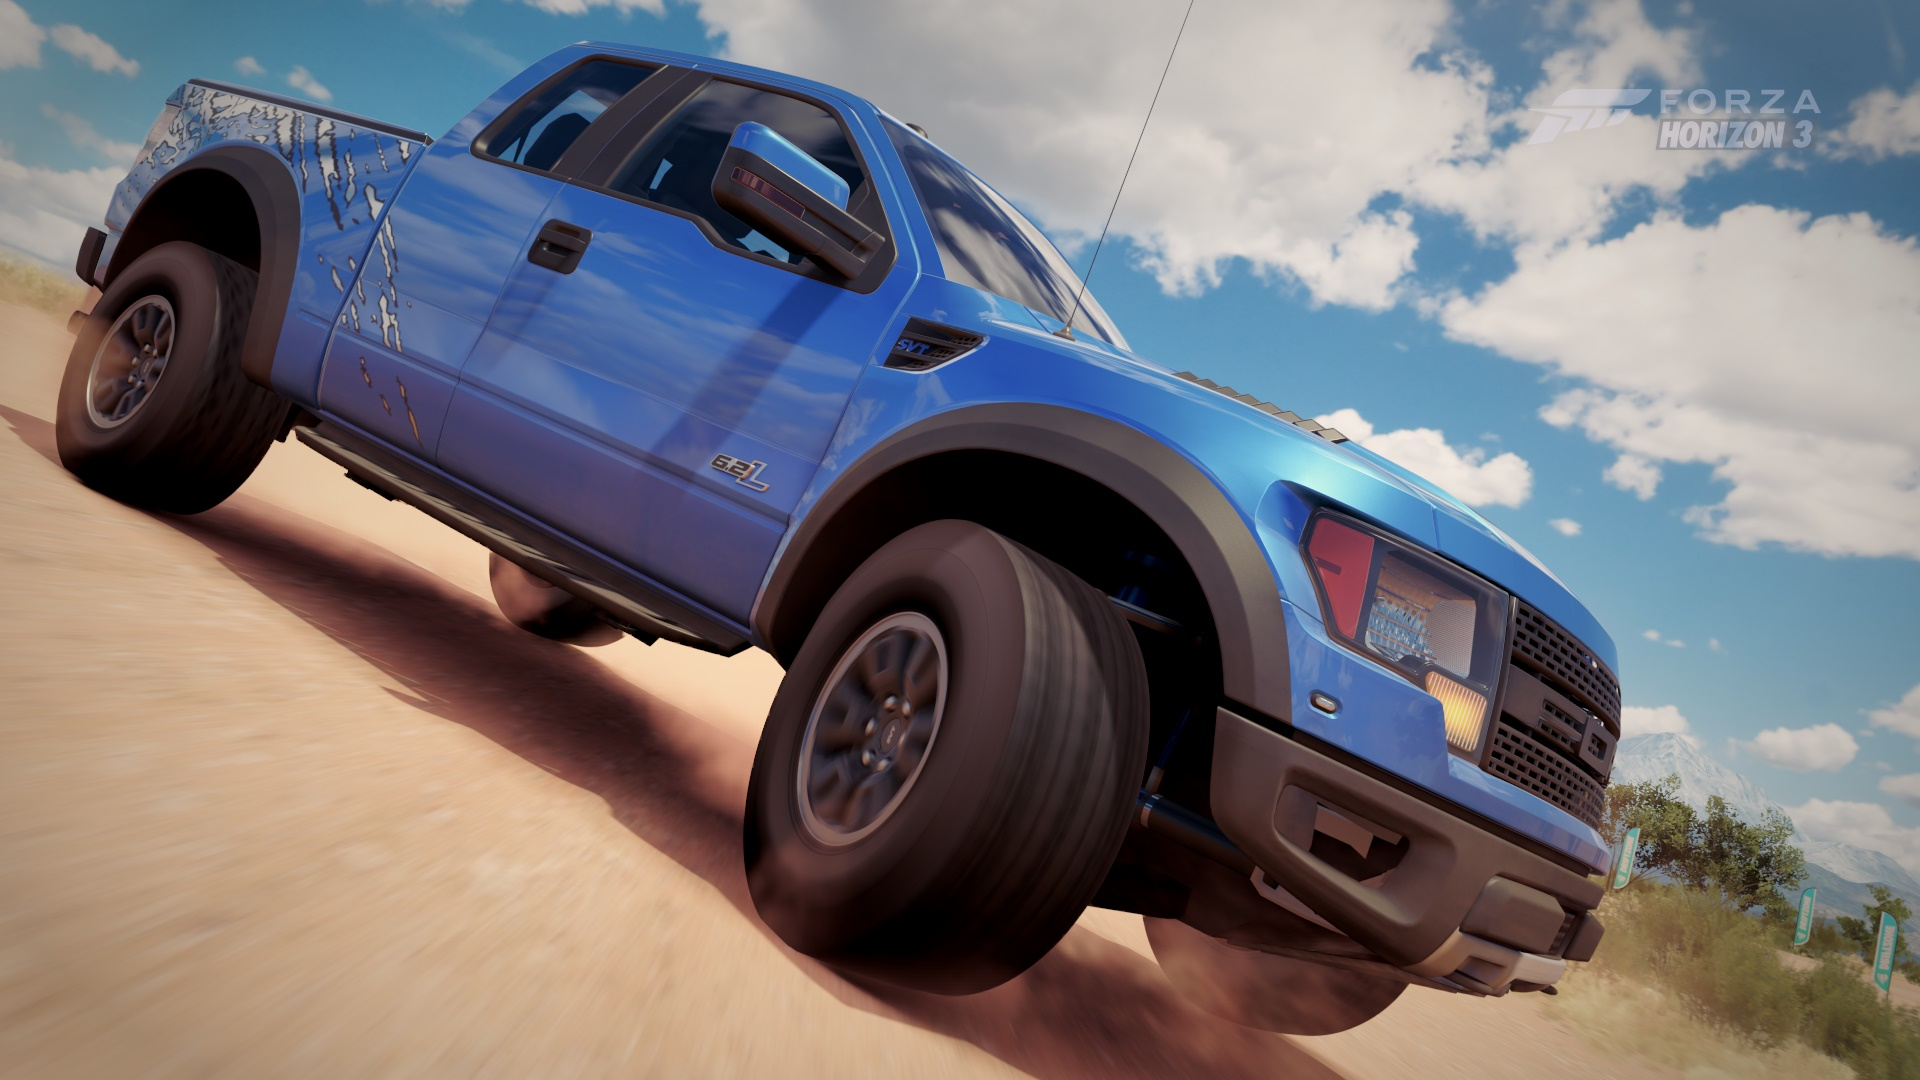 Forza Horizon 3 Cars 1994 Ford 5 0 Truck Engine Parts Diagram 2012 F 150 Svt Raptor Photo By Fireprofcargo7